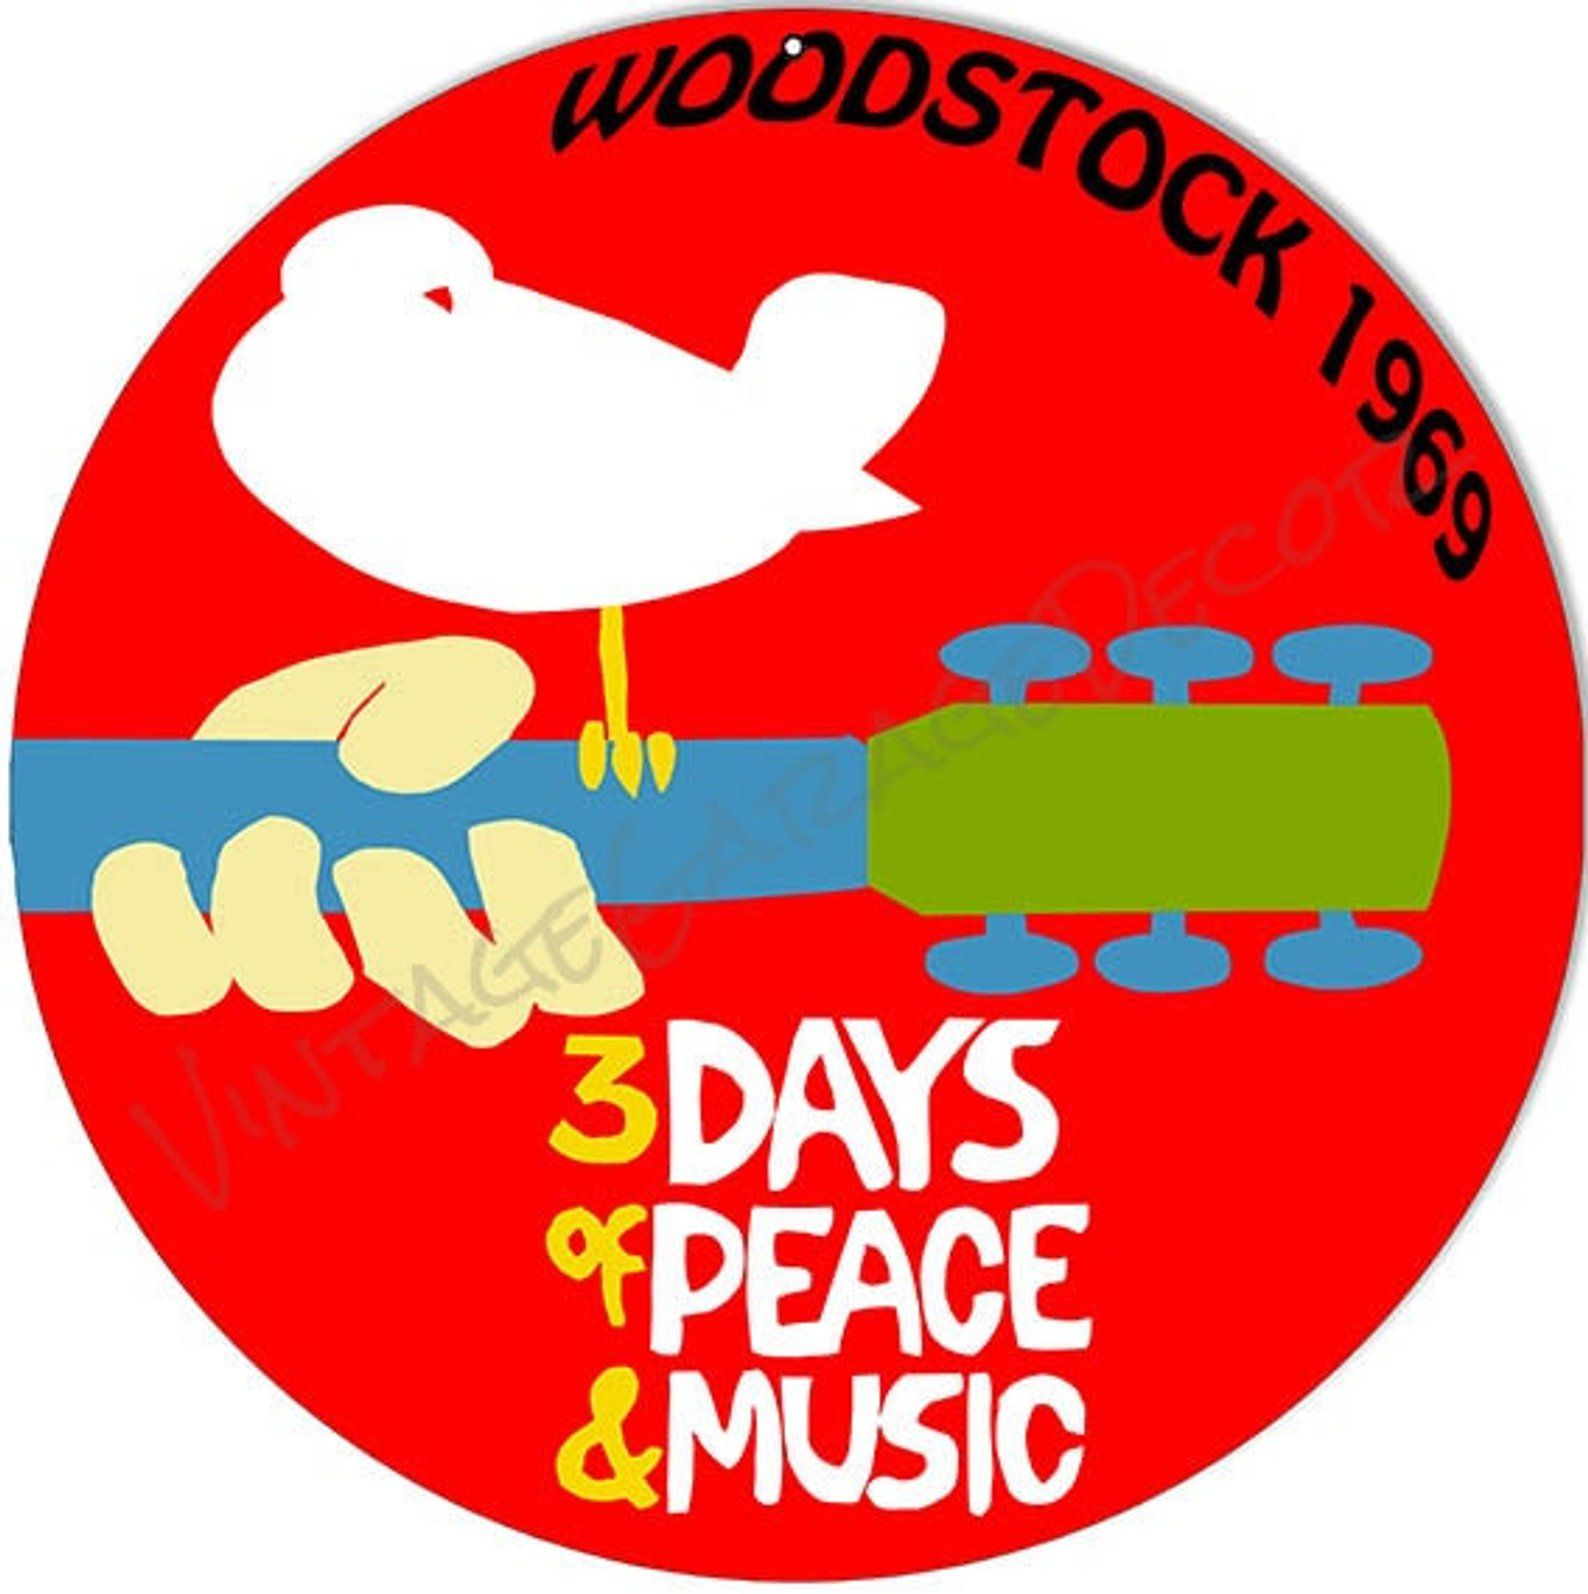 Vintage Style Woodstock 1969 3 Days Of Peace And Music